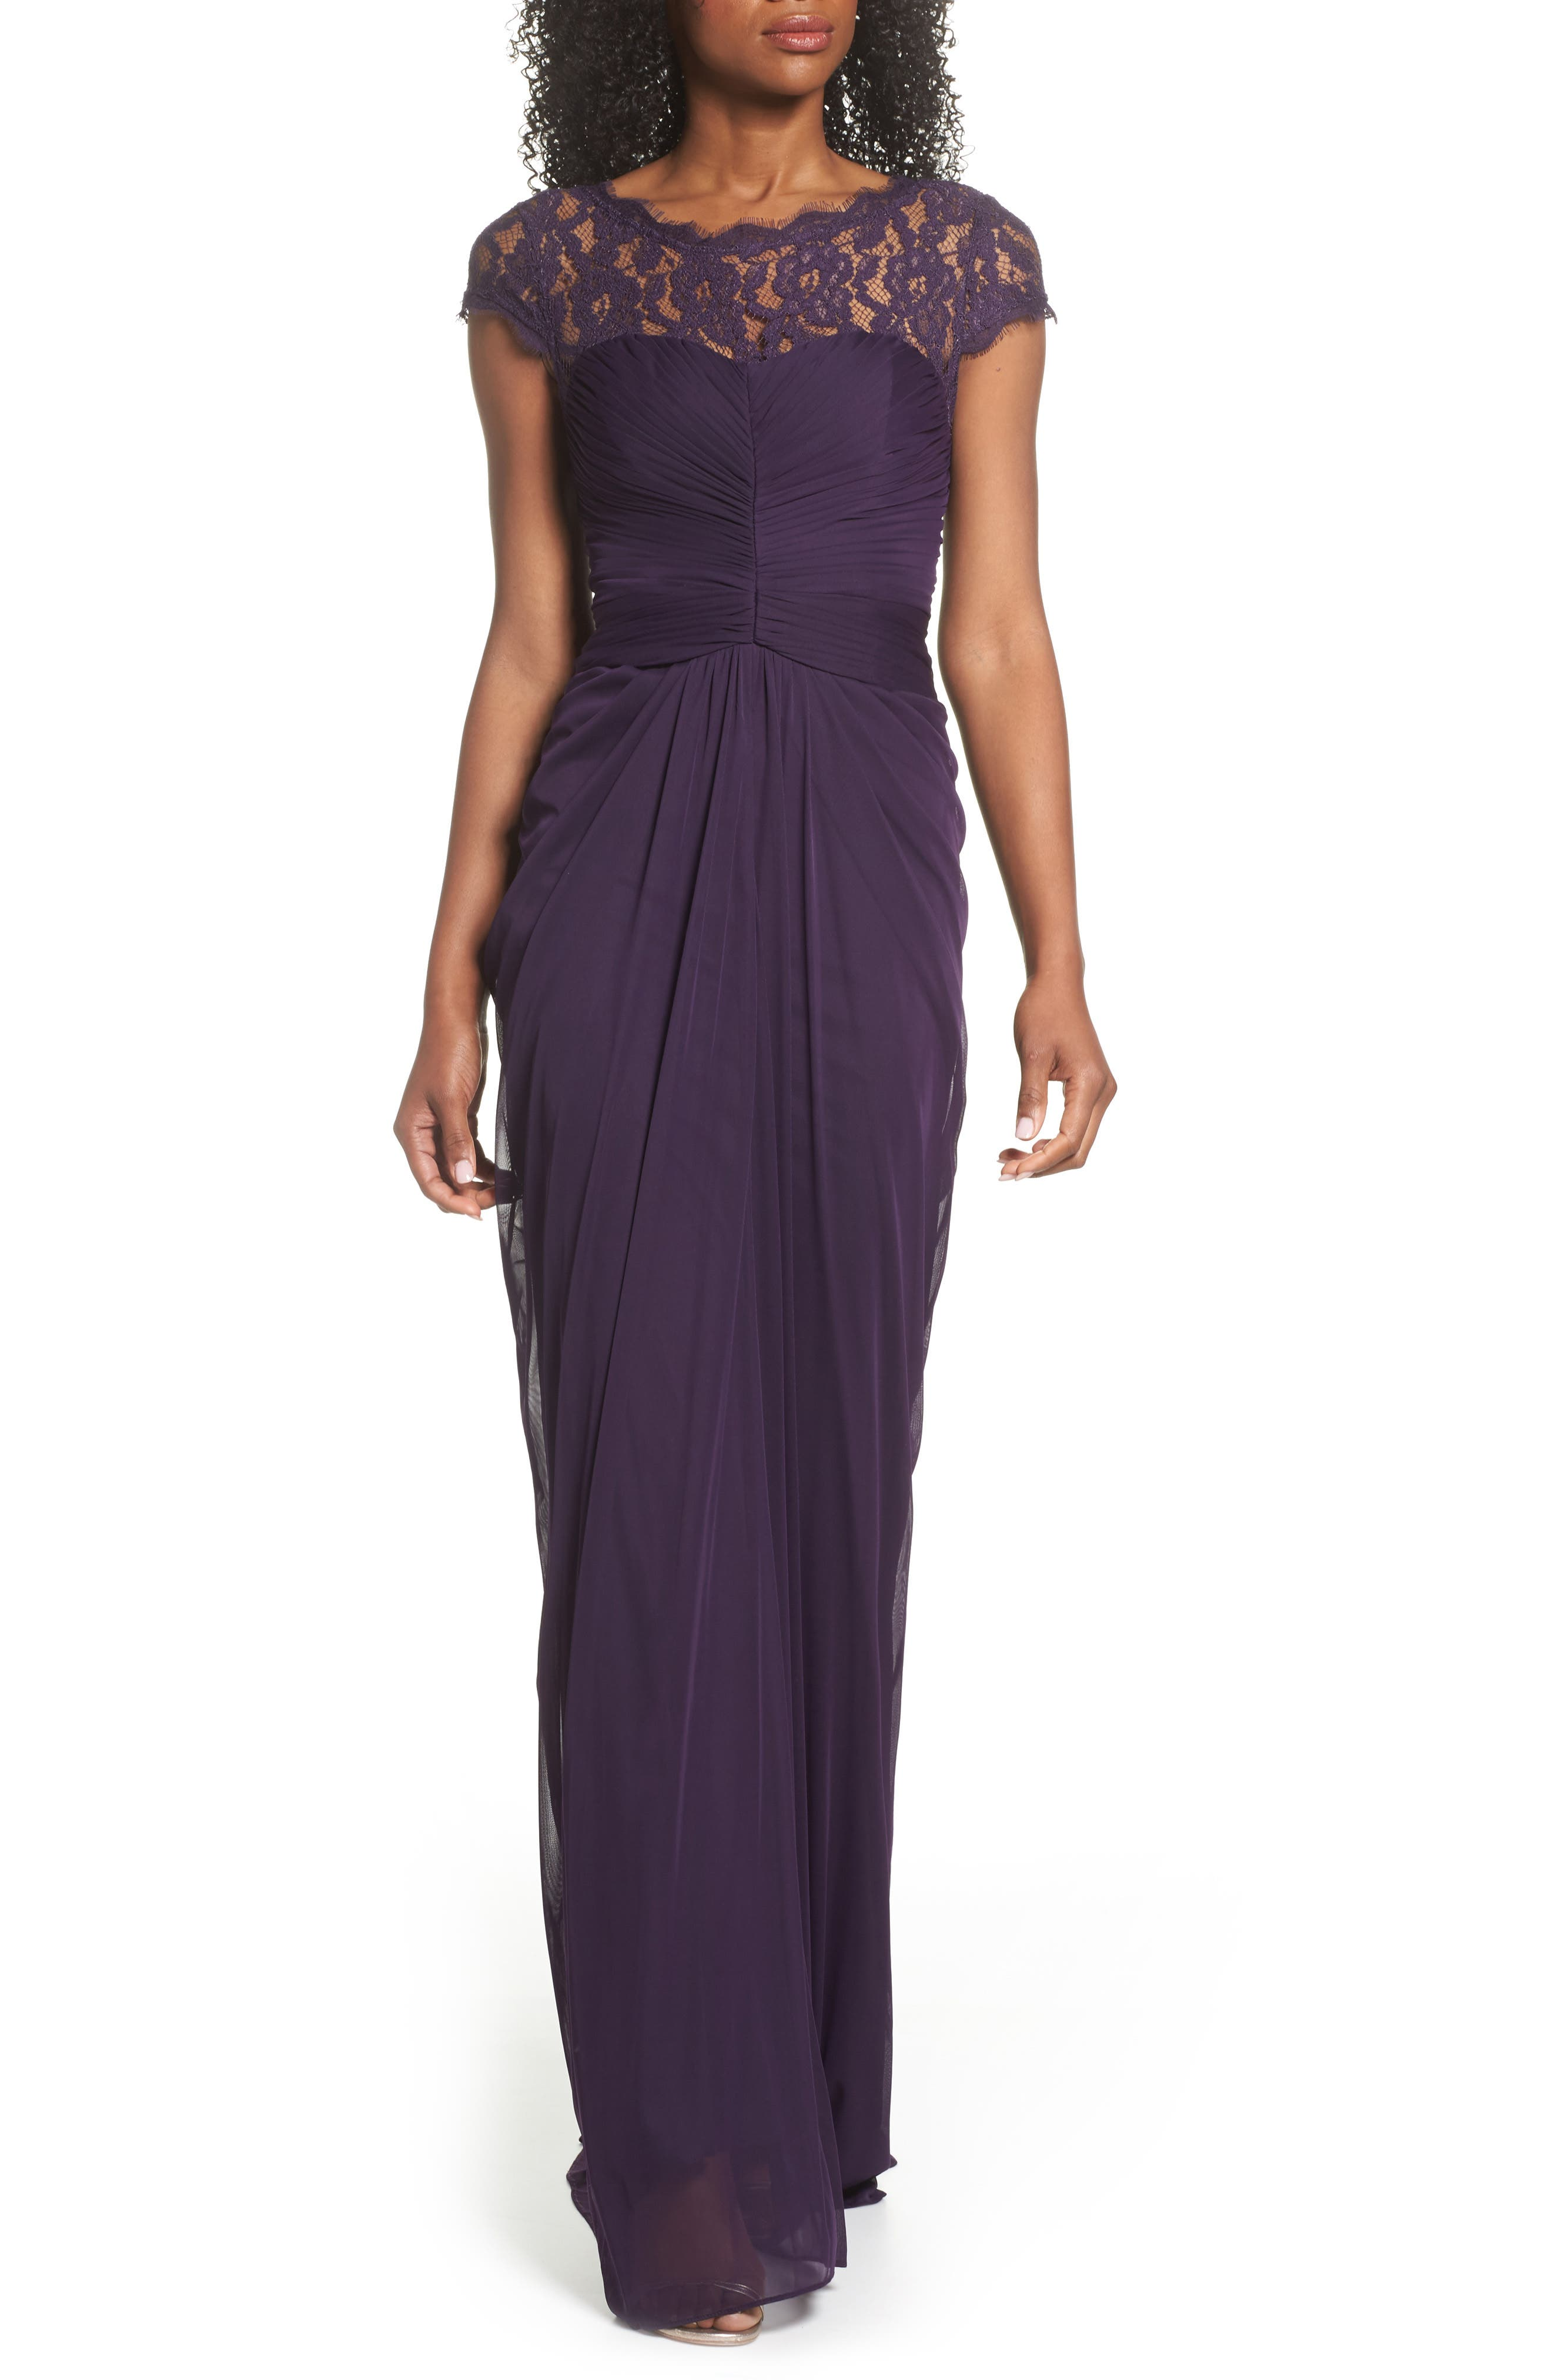 Alternate Image 1 Selected - Adrianna Papell Lace Yoke Drape Gown